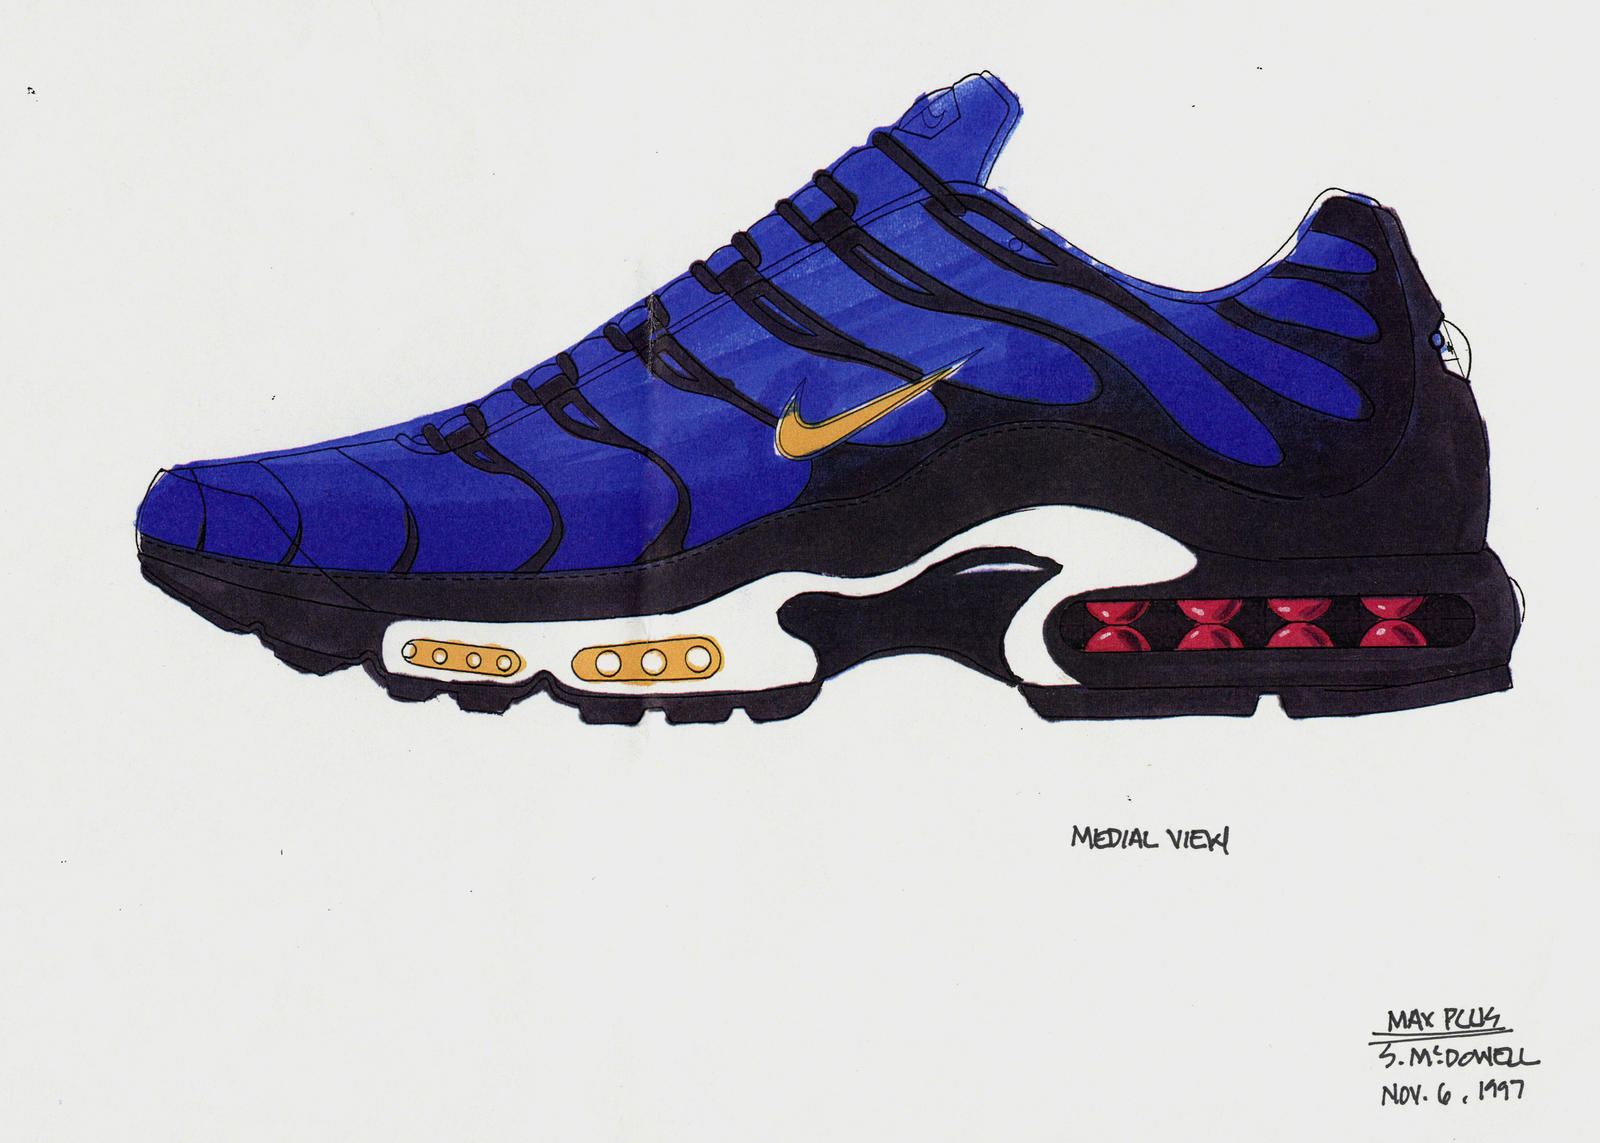 27cc6ca0961923 The Untold Story of the Nike Air Max Plus - Nike News